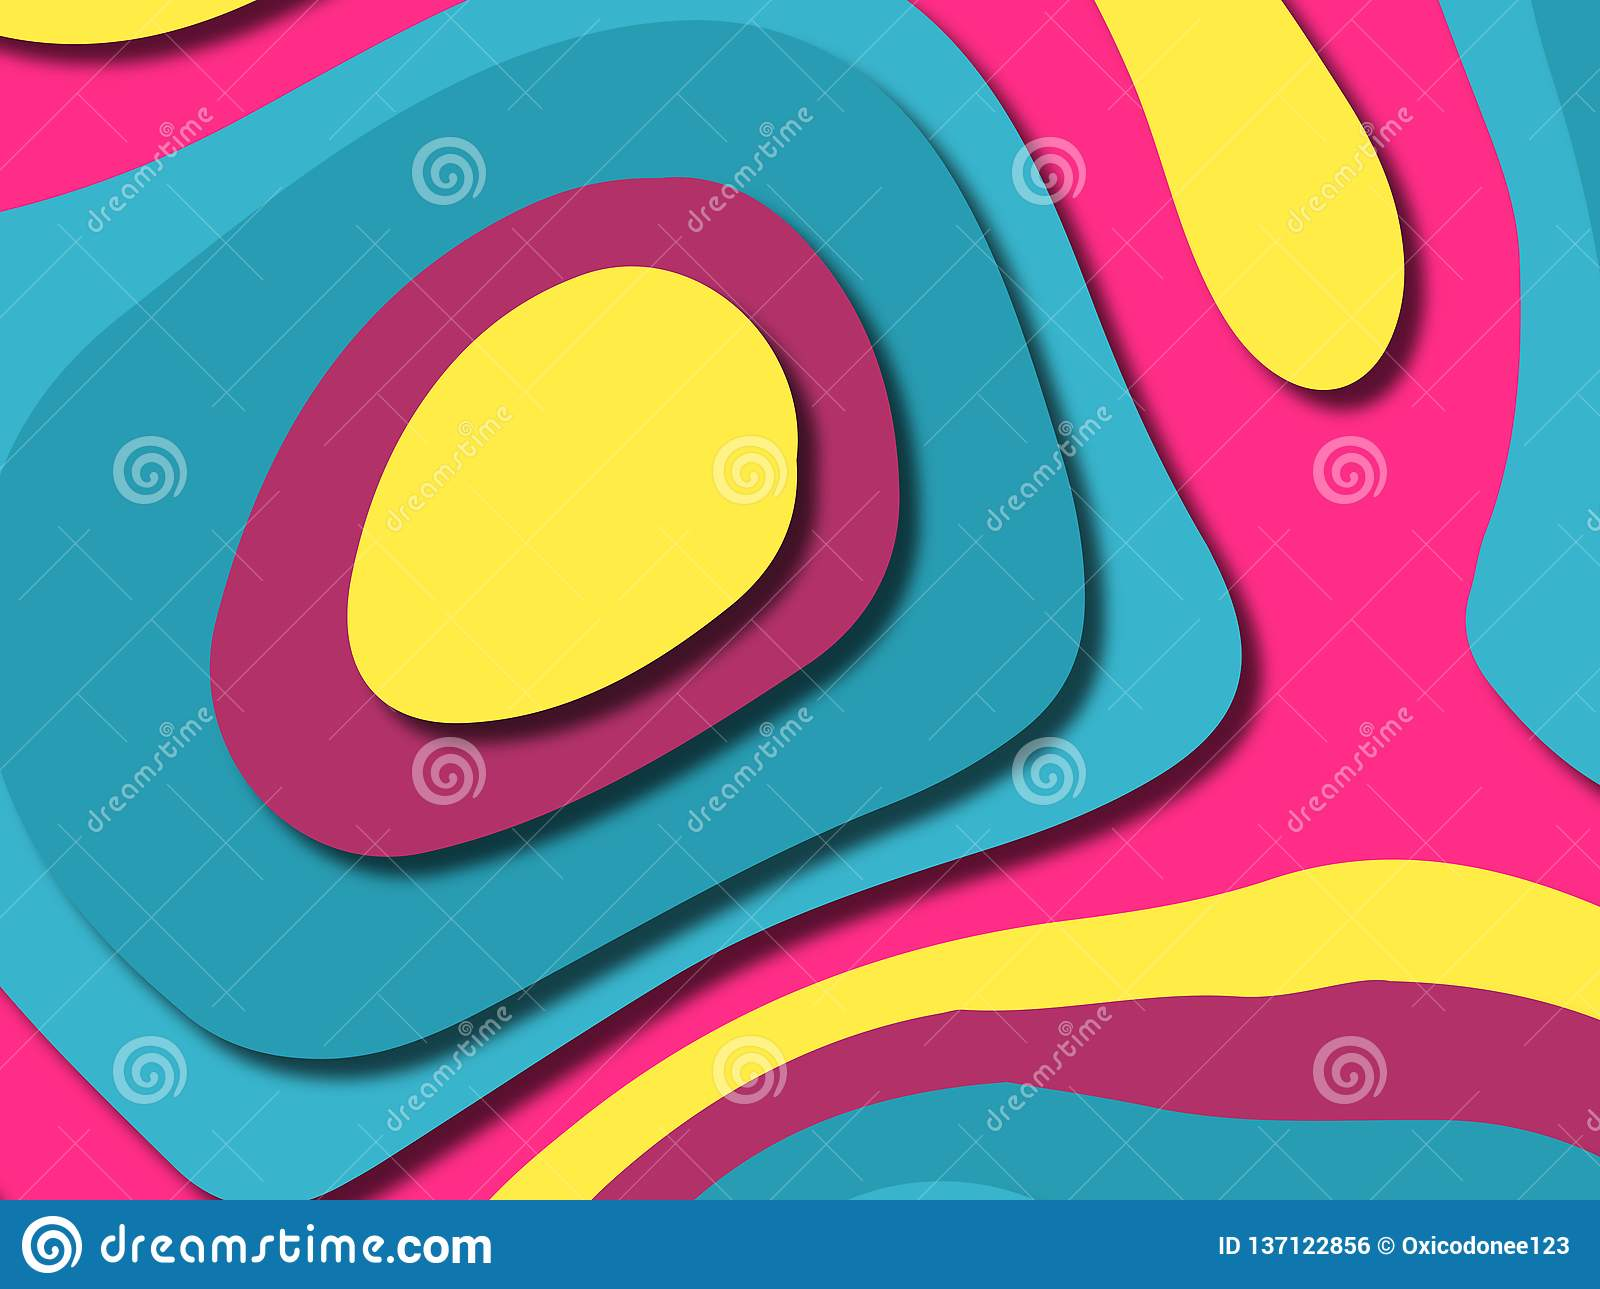 3D abstract background with paper cut shapes.Abstract paper carve template background,for book cover.Paper cut background. royalty free stock image